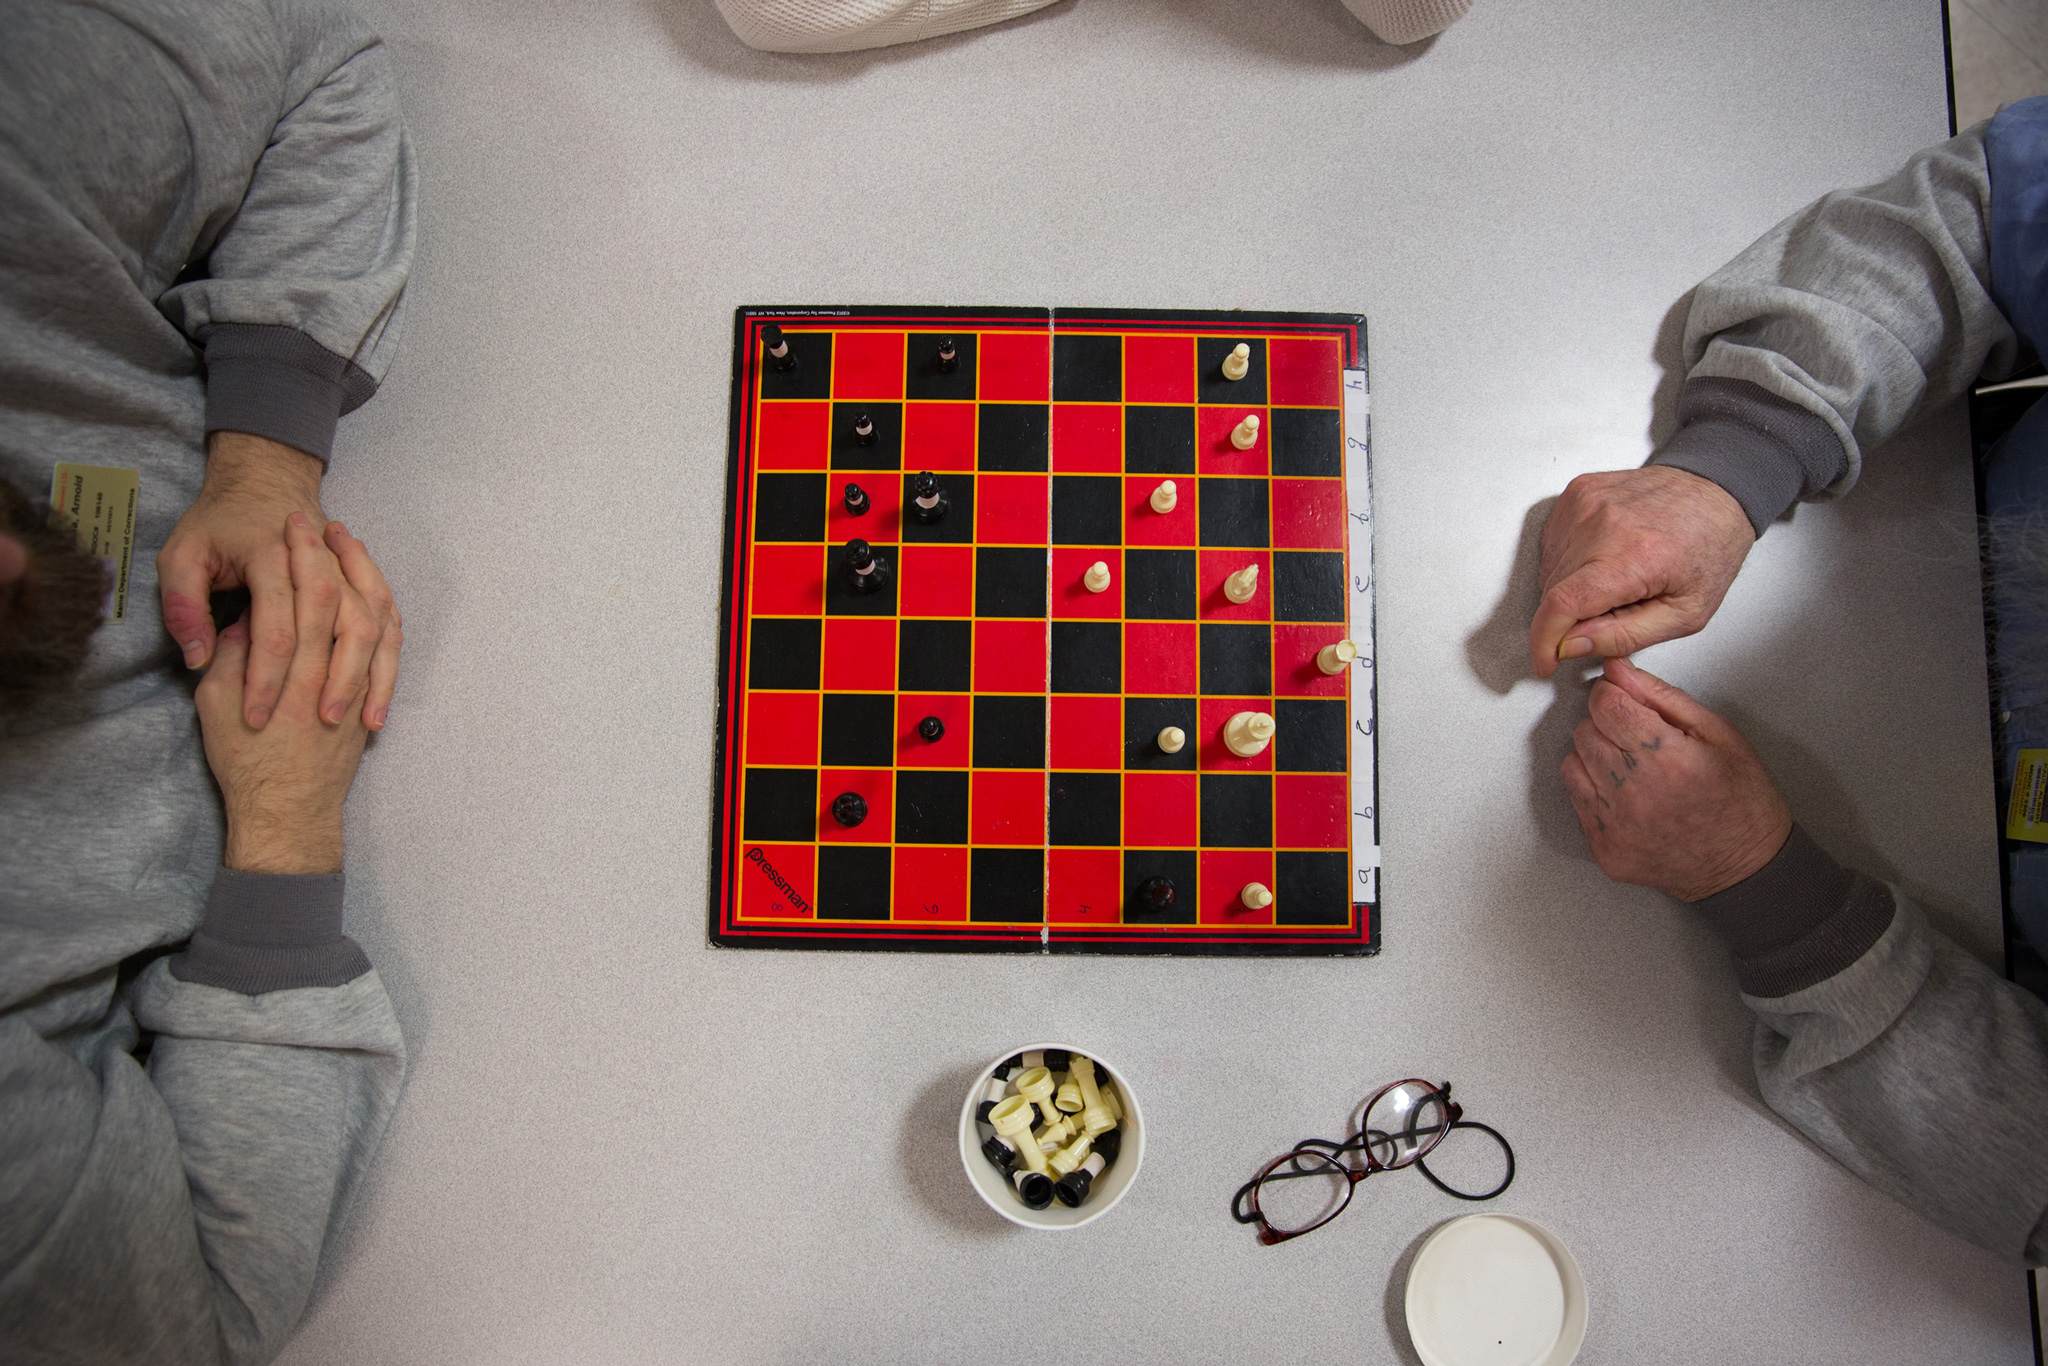 "Albert (right), 82 years old, plays chess with another inmate. Albert, who is wheelchair bound, rarely travels farther than 30 feet from his cell. When he does ""travel"" he plays chess (8 ft away), boils water for tea (30 ft away), or picks up one of his three meals from the guard desk (15 ft away) which he eats in his cell."